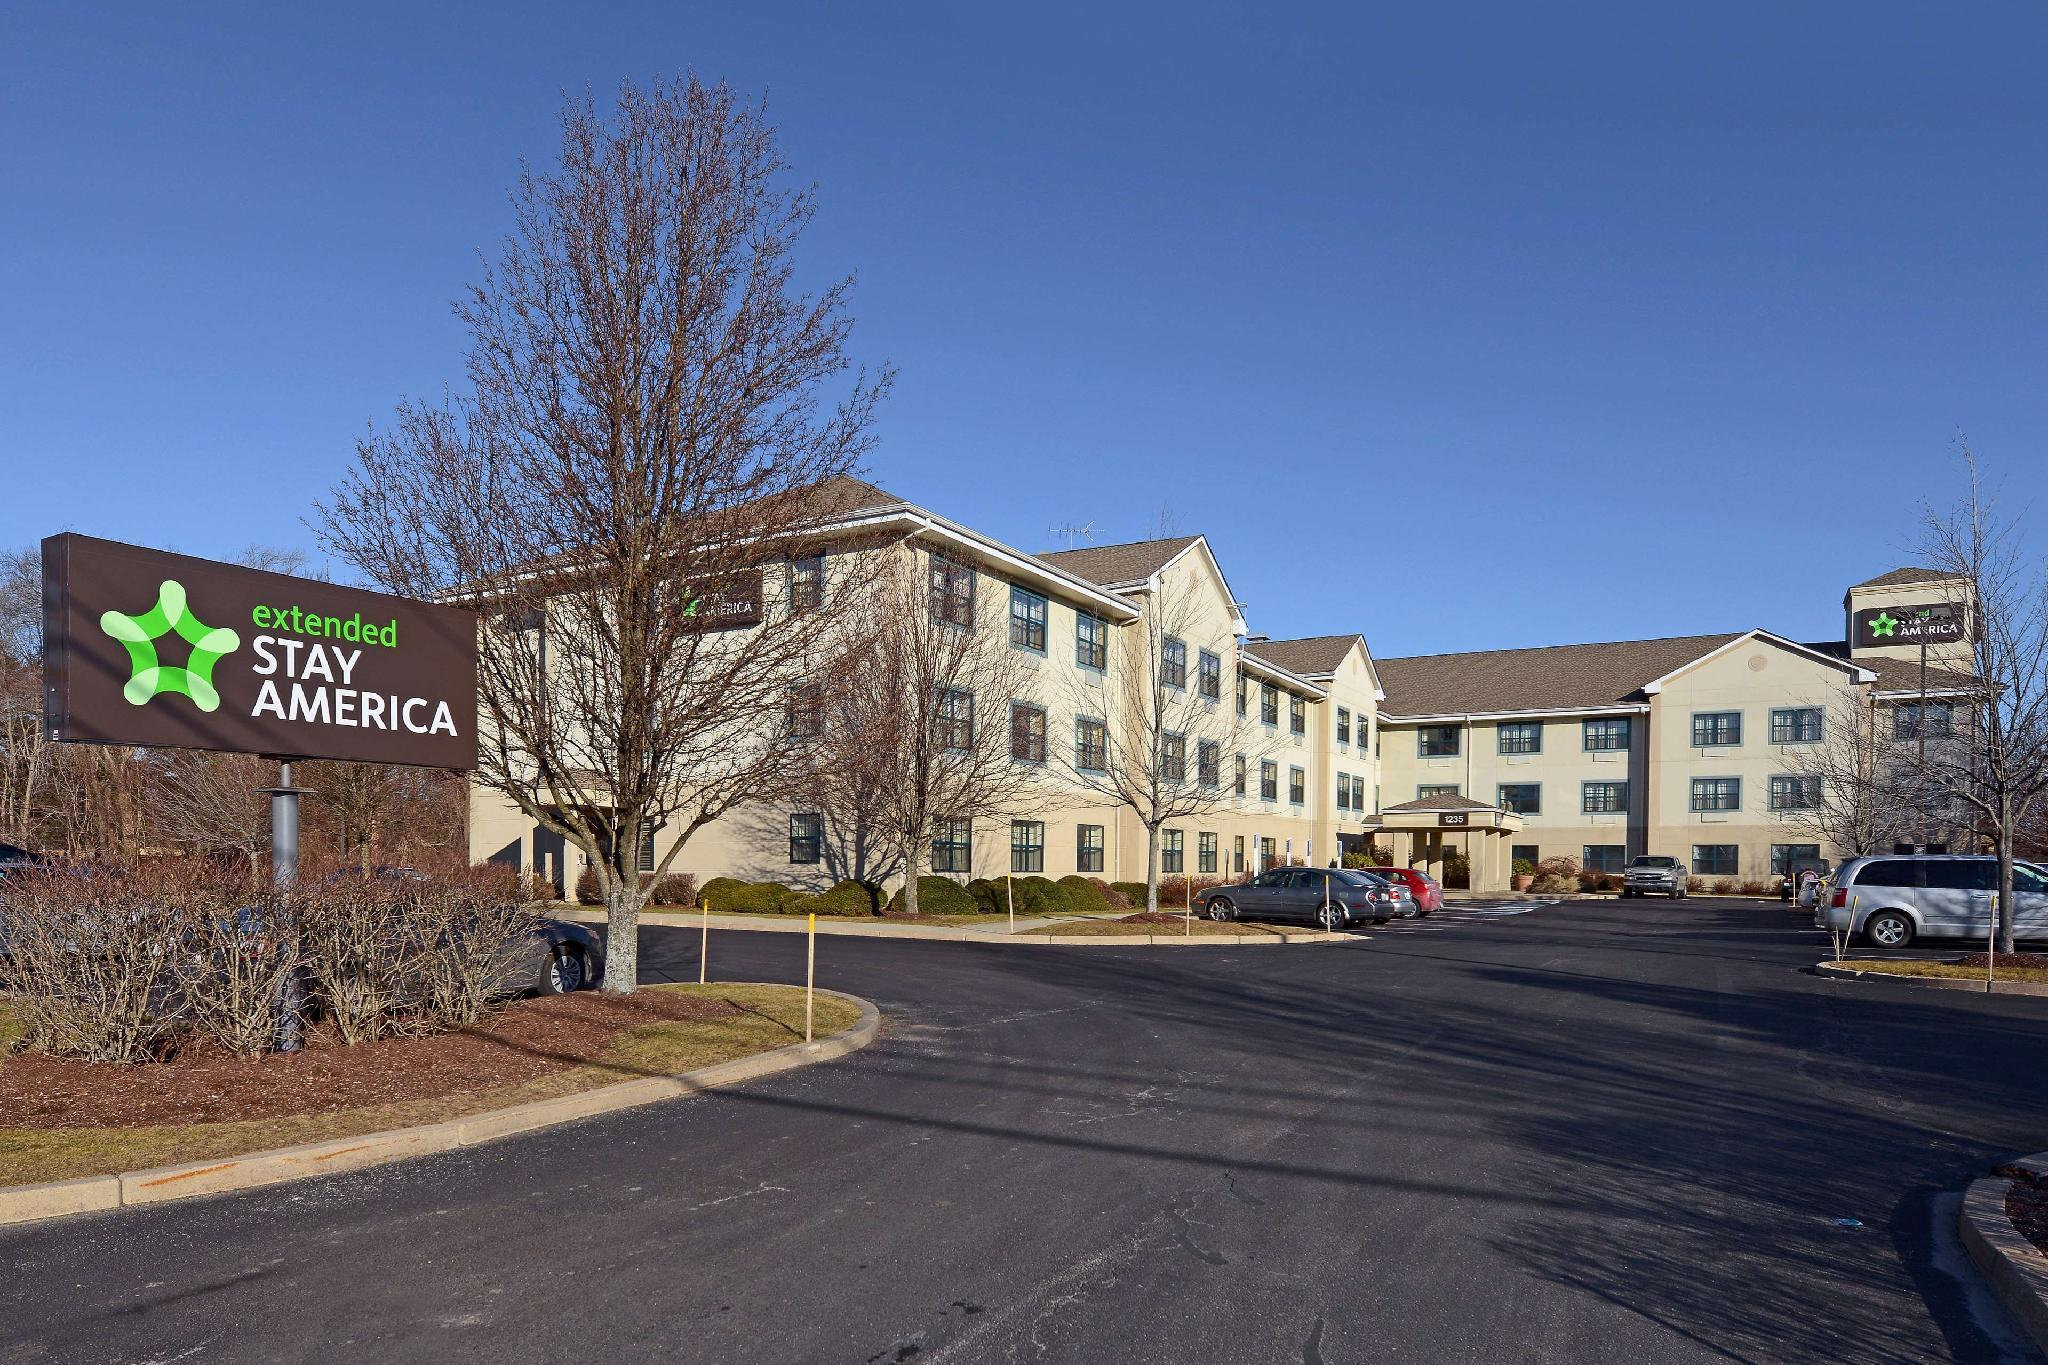 Extended Stay America PVD Airport West Warwick